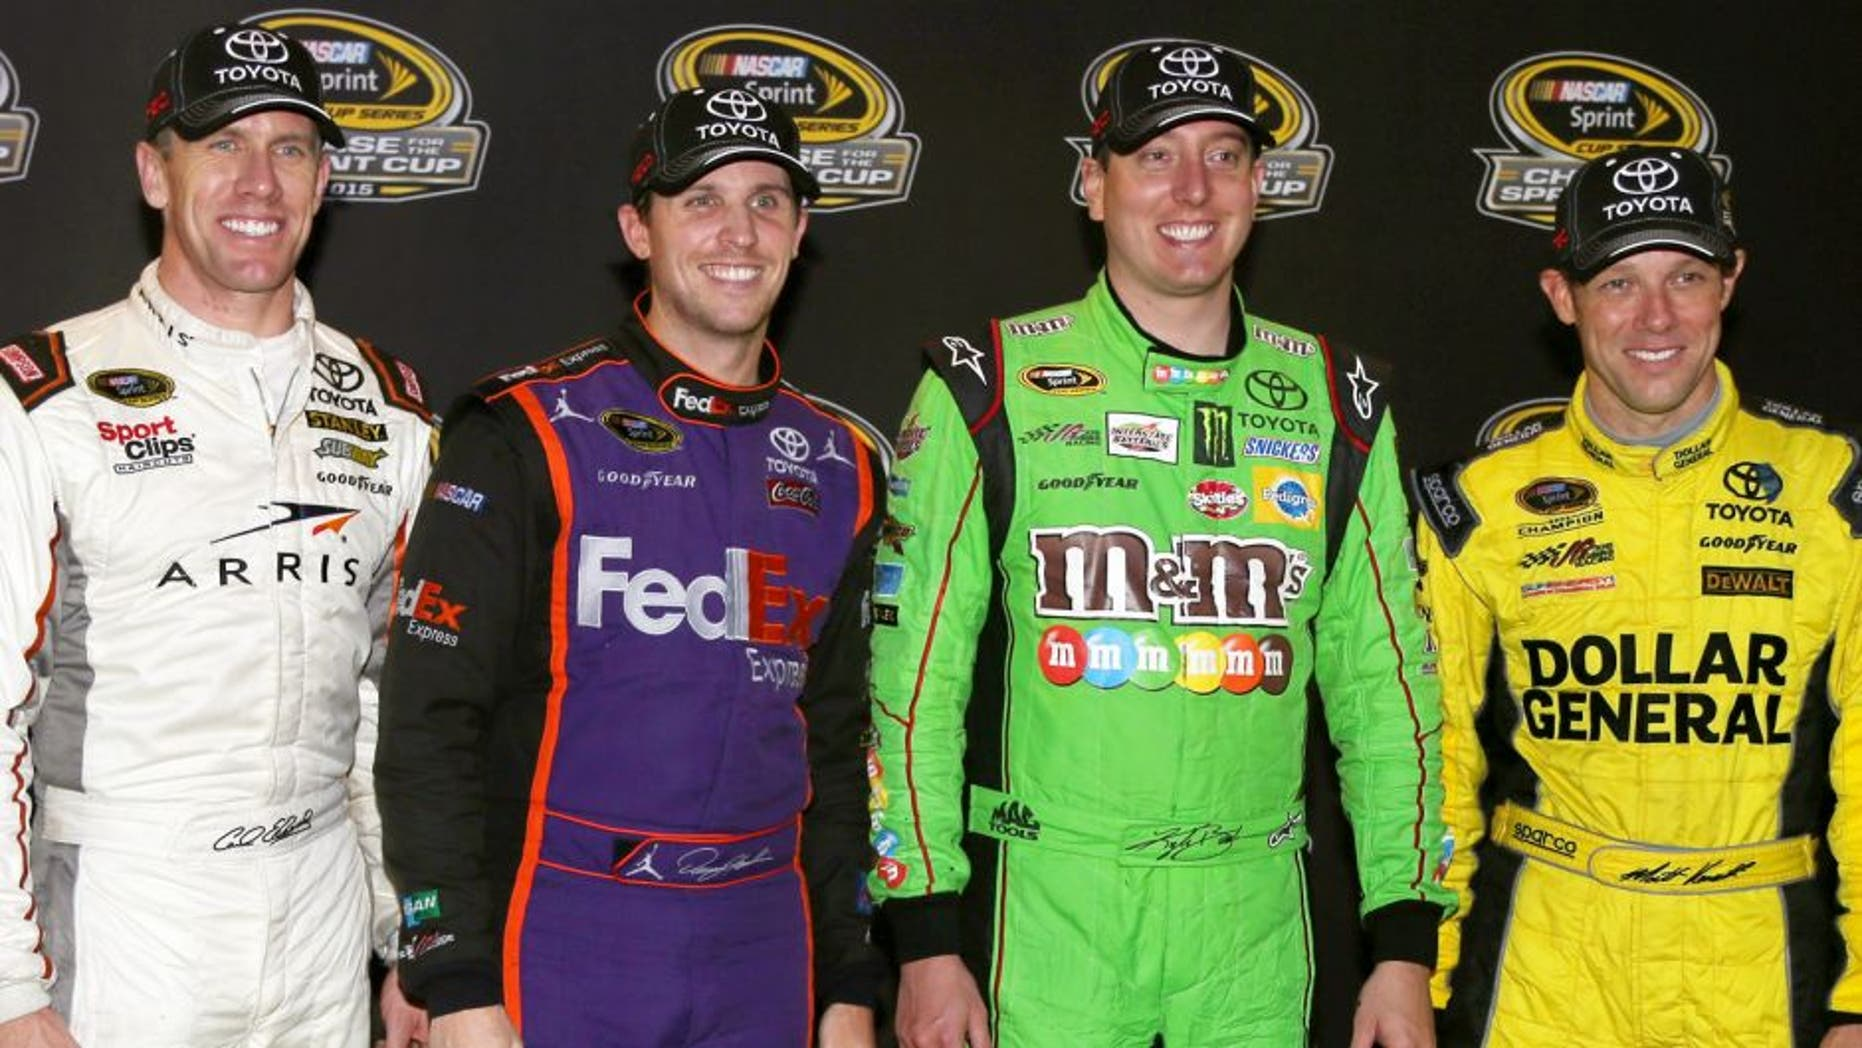 Carl Edwards, driver of the #19 ARRIS Toyota, Denny Hamlin, driver of the #11 FedEx Express Toyota, Kyle Busch, driver of the #18 M&M's Crispy/American Heritage Chocolate Toyota, and Matt Kenseth, driver of the #20 Dollar General Toyota, pose for a photo during the Post Race Party after making the Chase for the Sprint Cup after the NASCAR Sprint Cup Series Federated Auto Parts 400 at Richmond International Raceway on September 12, 2015 in Richmond, Virginia. (Photo by Jerry Markland/Getty Images)